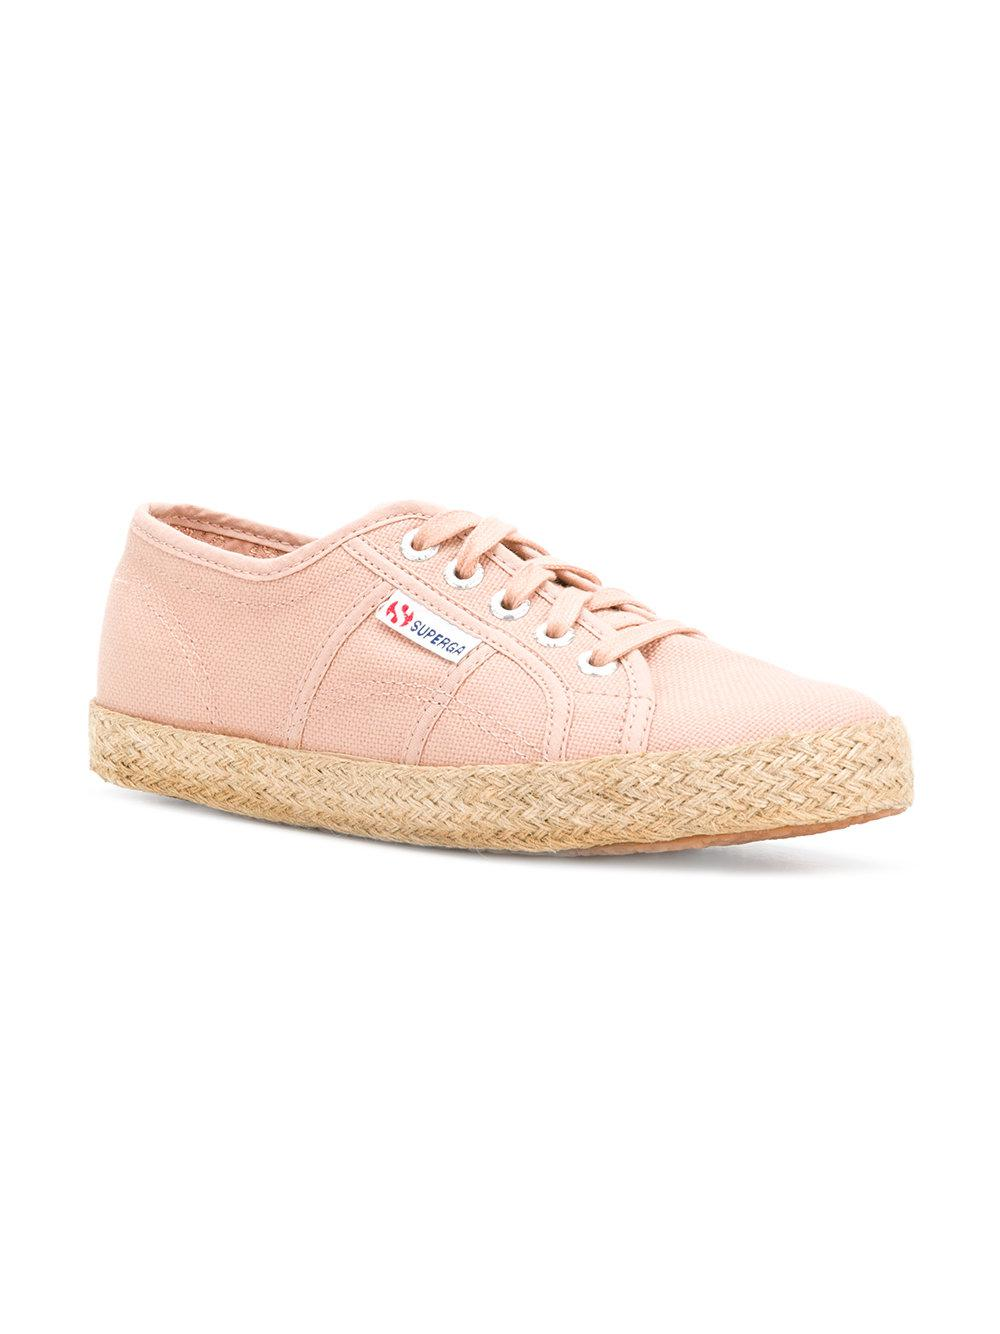 low top woven sole sneakers - Pink & Purple Superga KHGwQ6NP